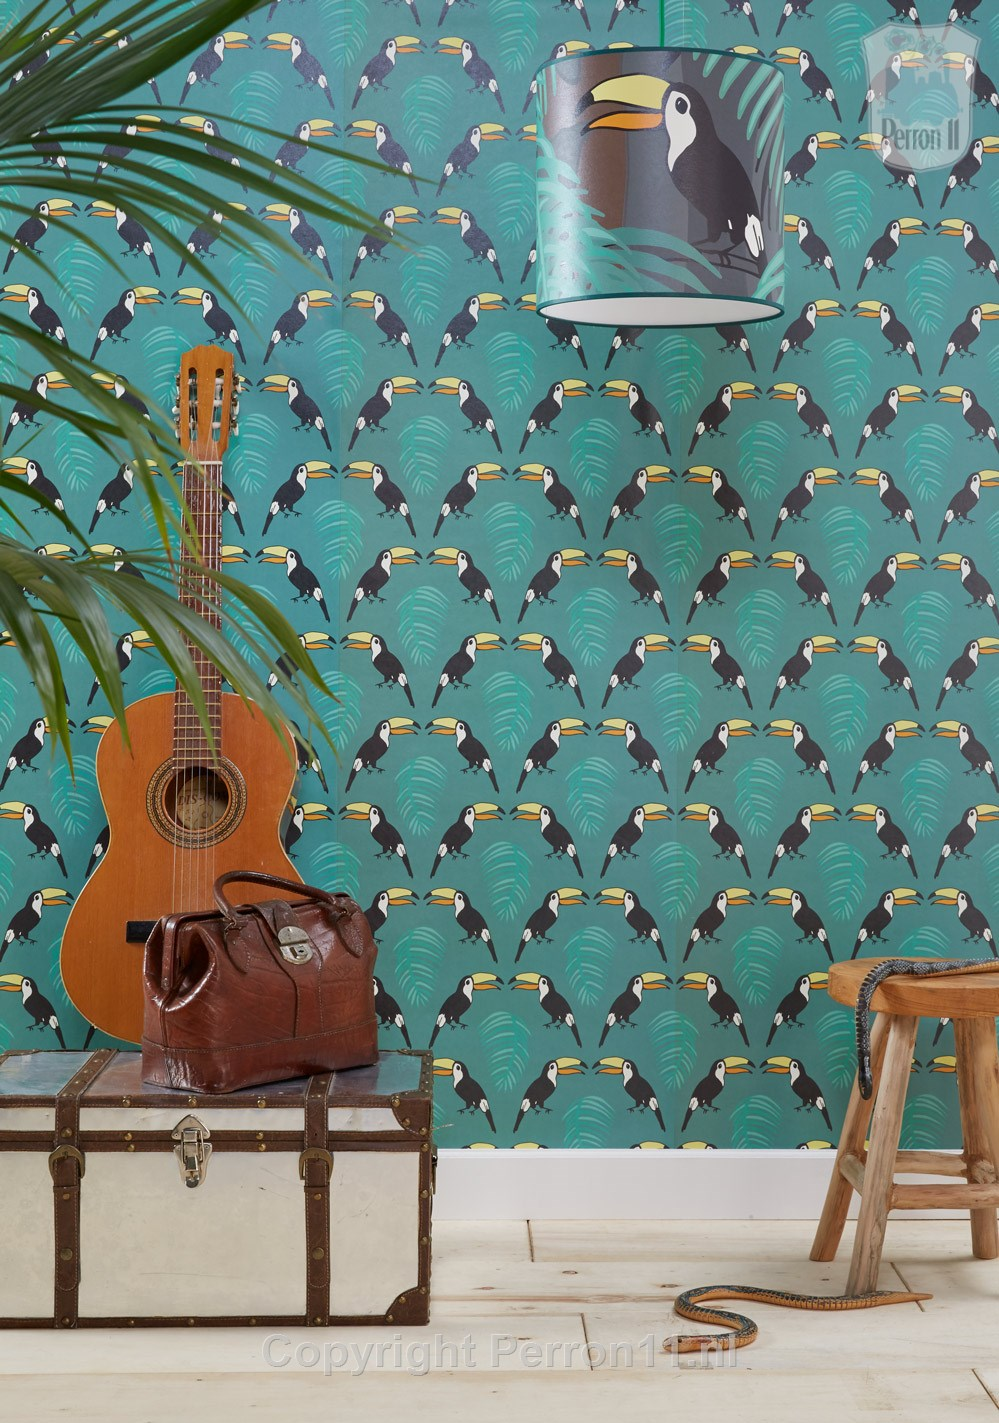 jungle wallpaper toucan with wooden furniture and leather suitcases